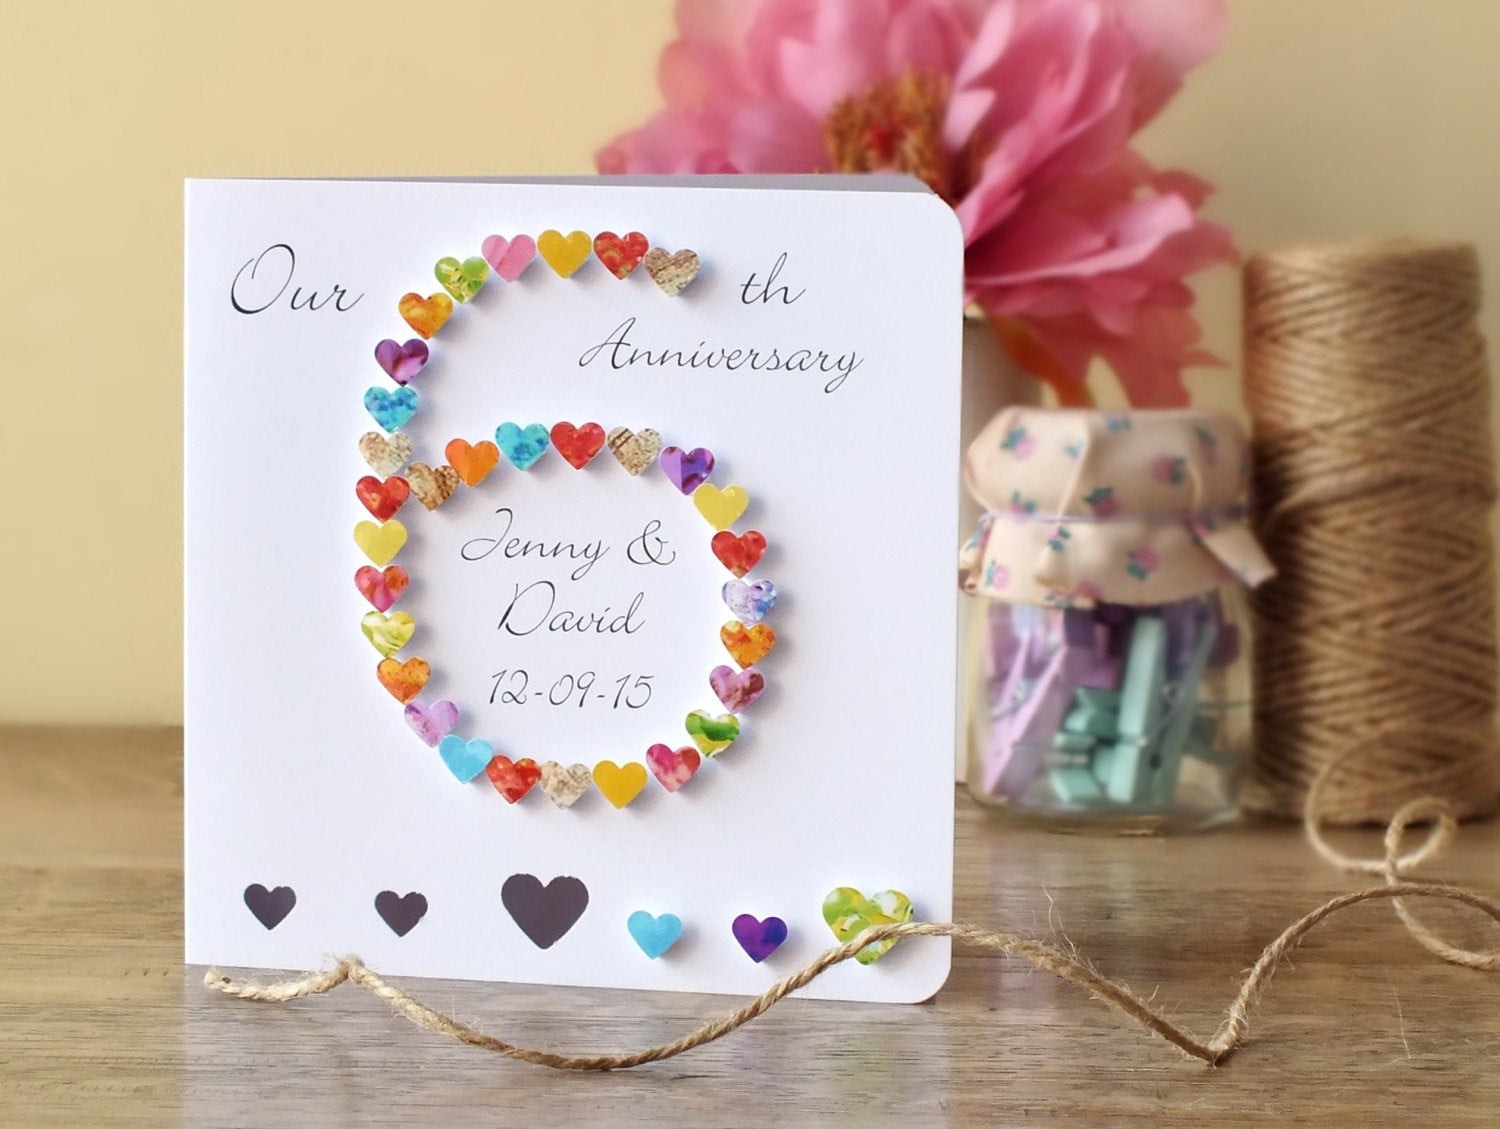 6Th Wedding Anniversary Gift Ideas For Her  6Th Wedding Anniversary Gift Ideas For Husband – Gift Ftempo